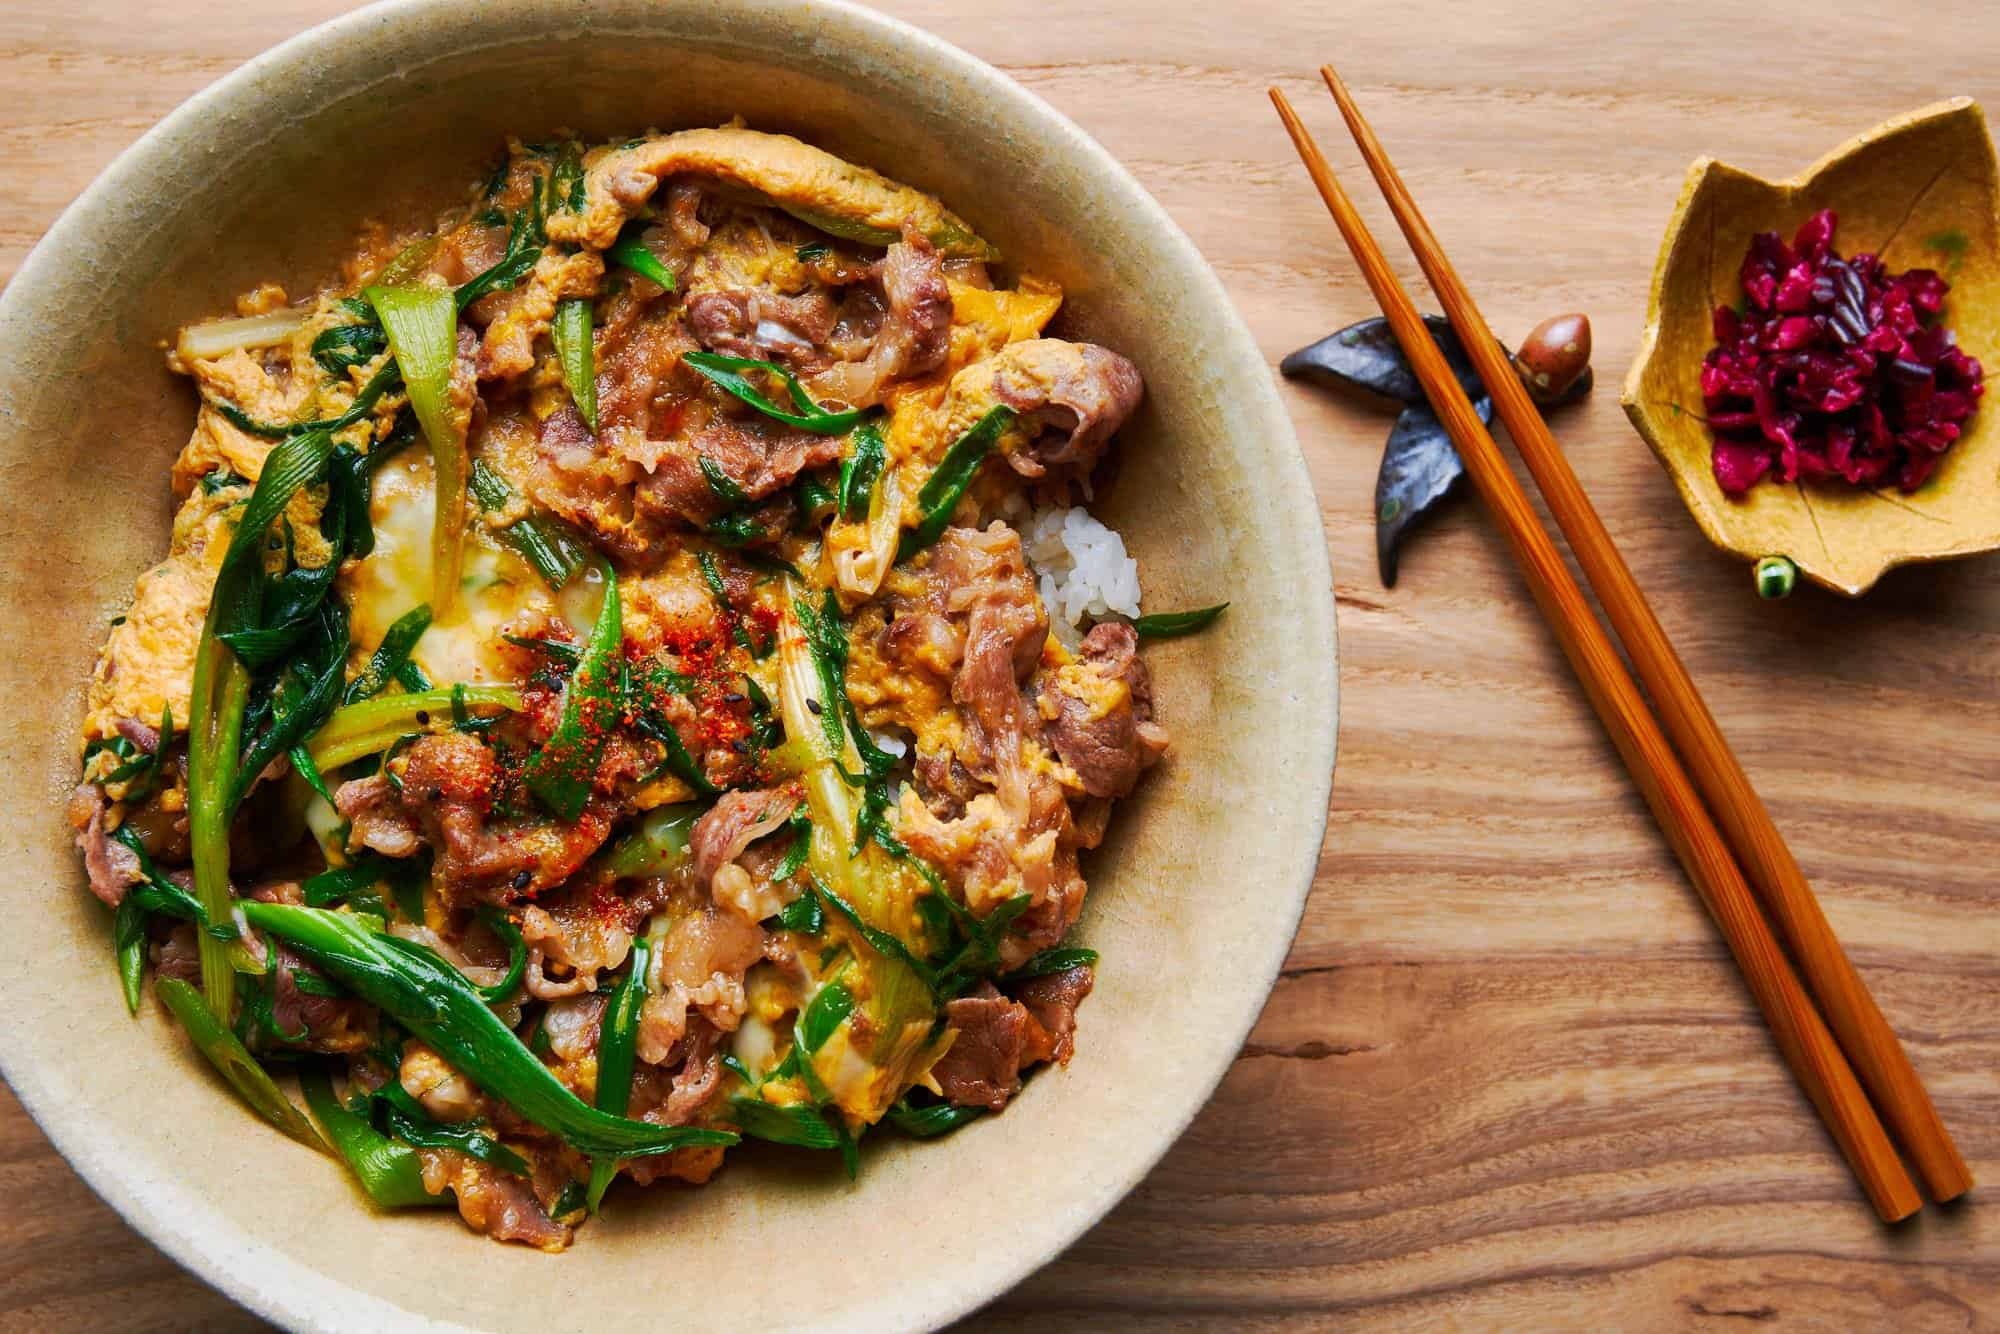 This Japanese beef bowl is loaded with tender beef, sweet scallions and creamy egg cooked in a sweet and savory broth.